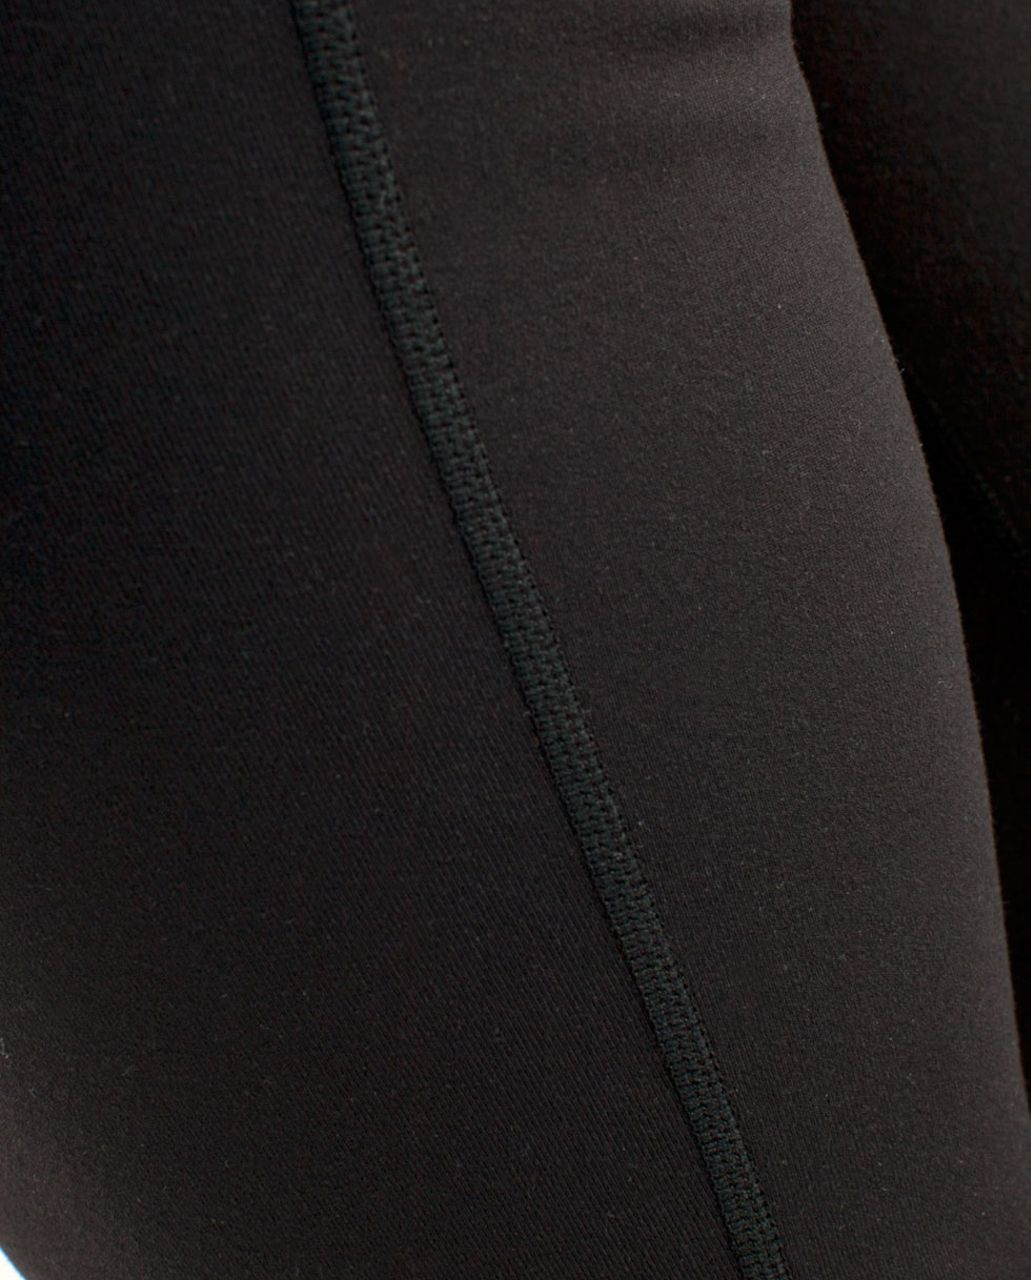 Lululemon Groove Crop - Black /  White Coal Tinted Canvas Super